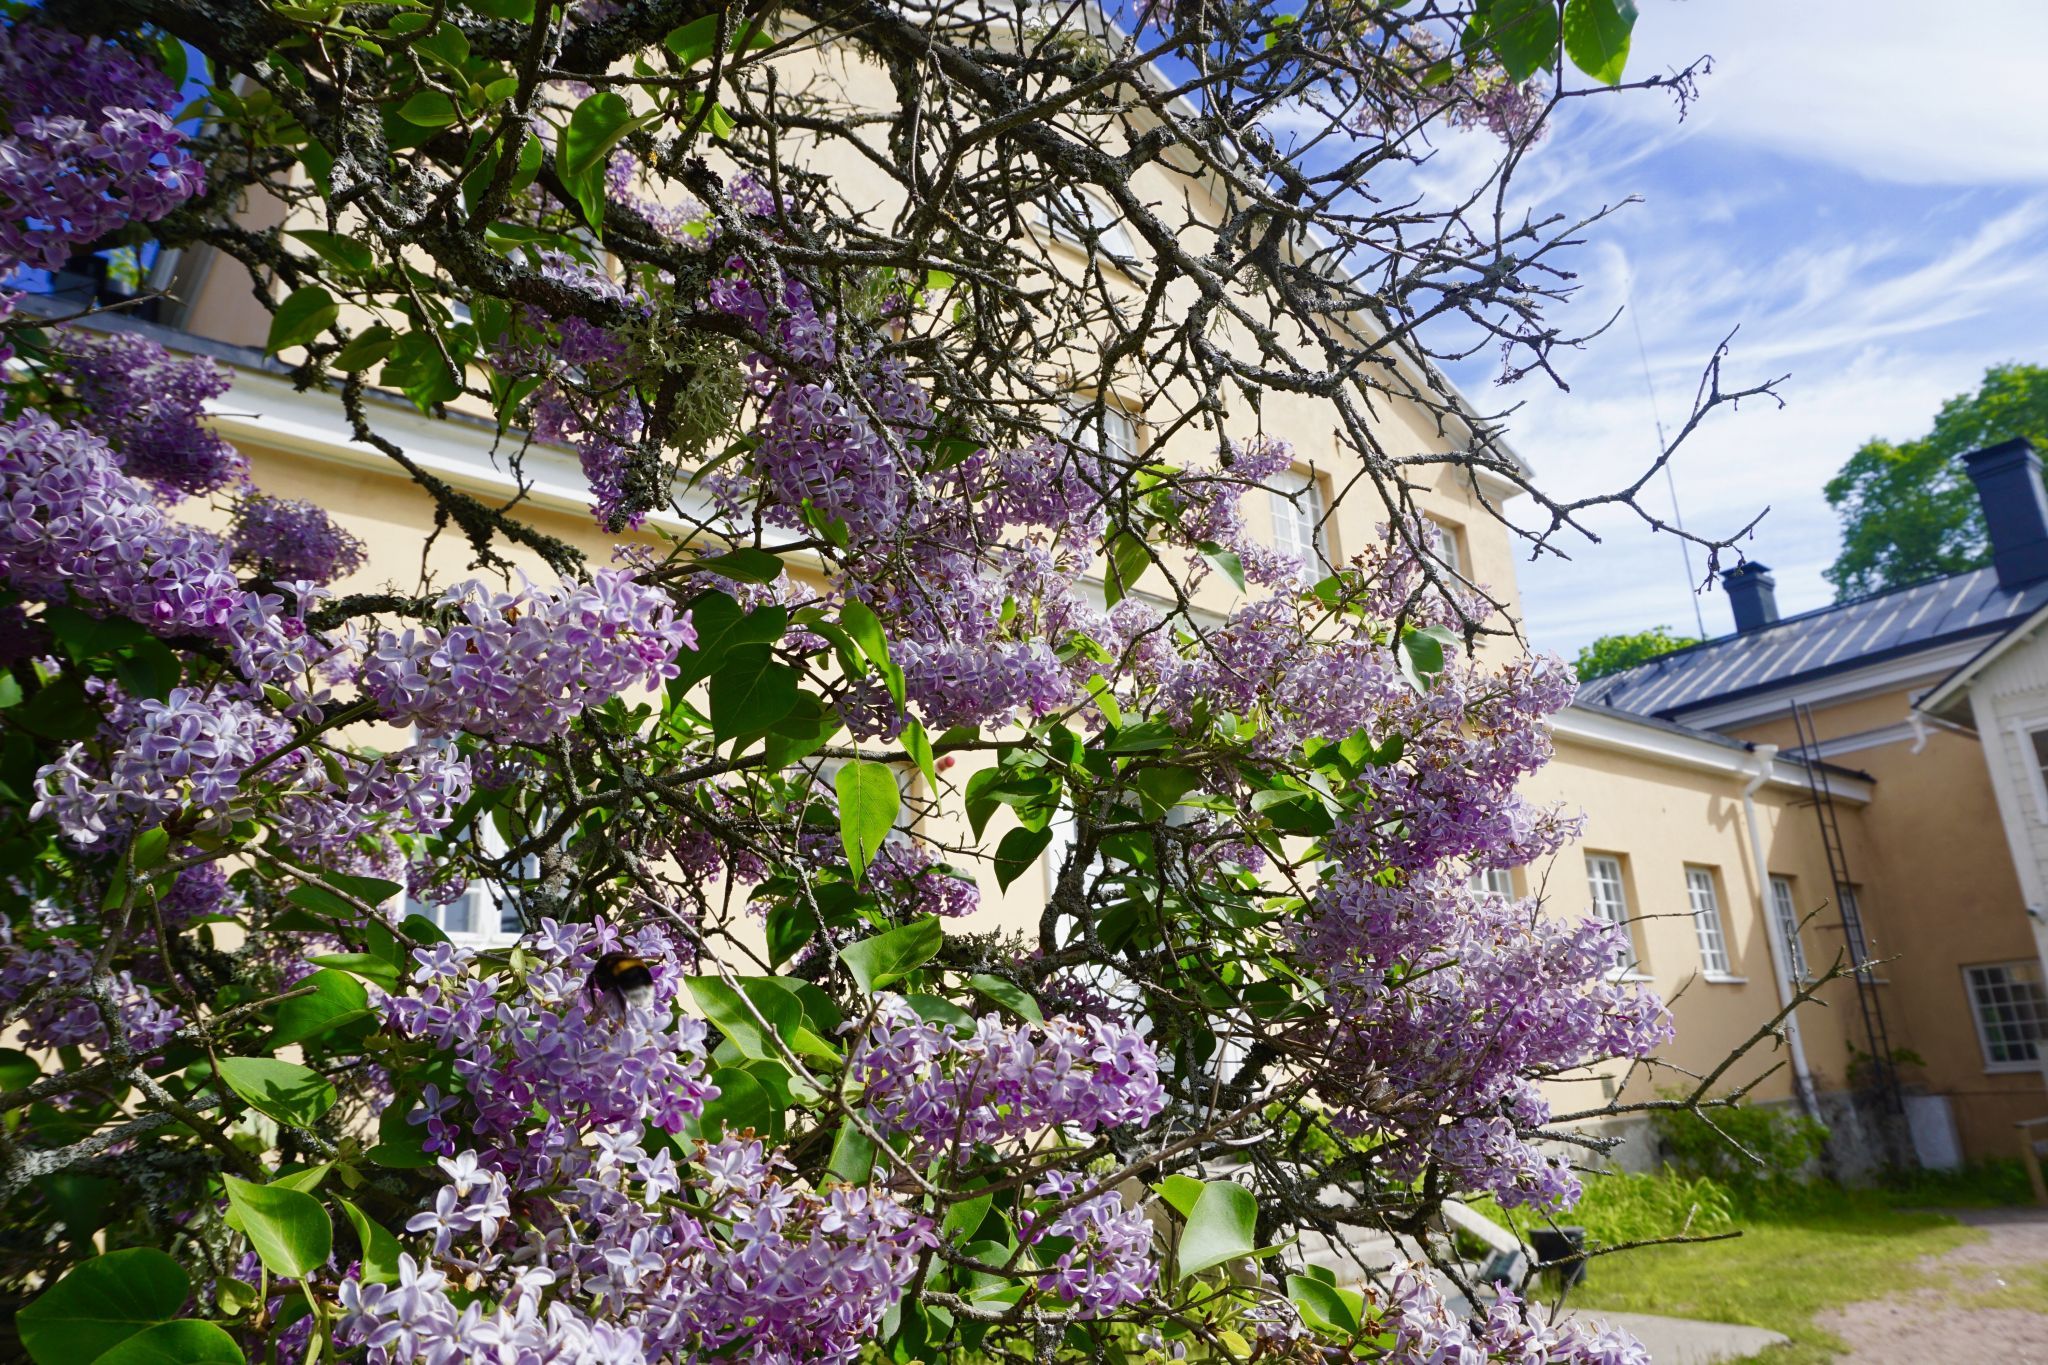 Lilacs on Seili bloom during early summer